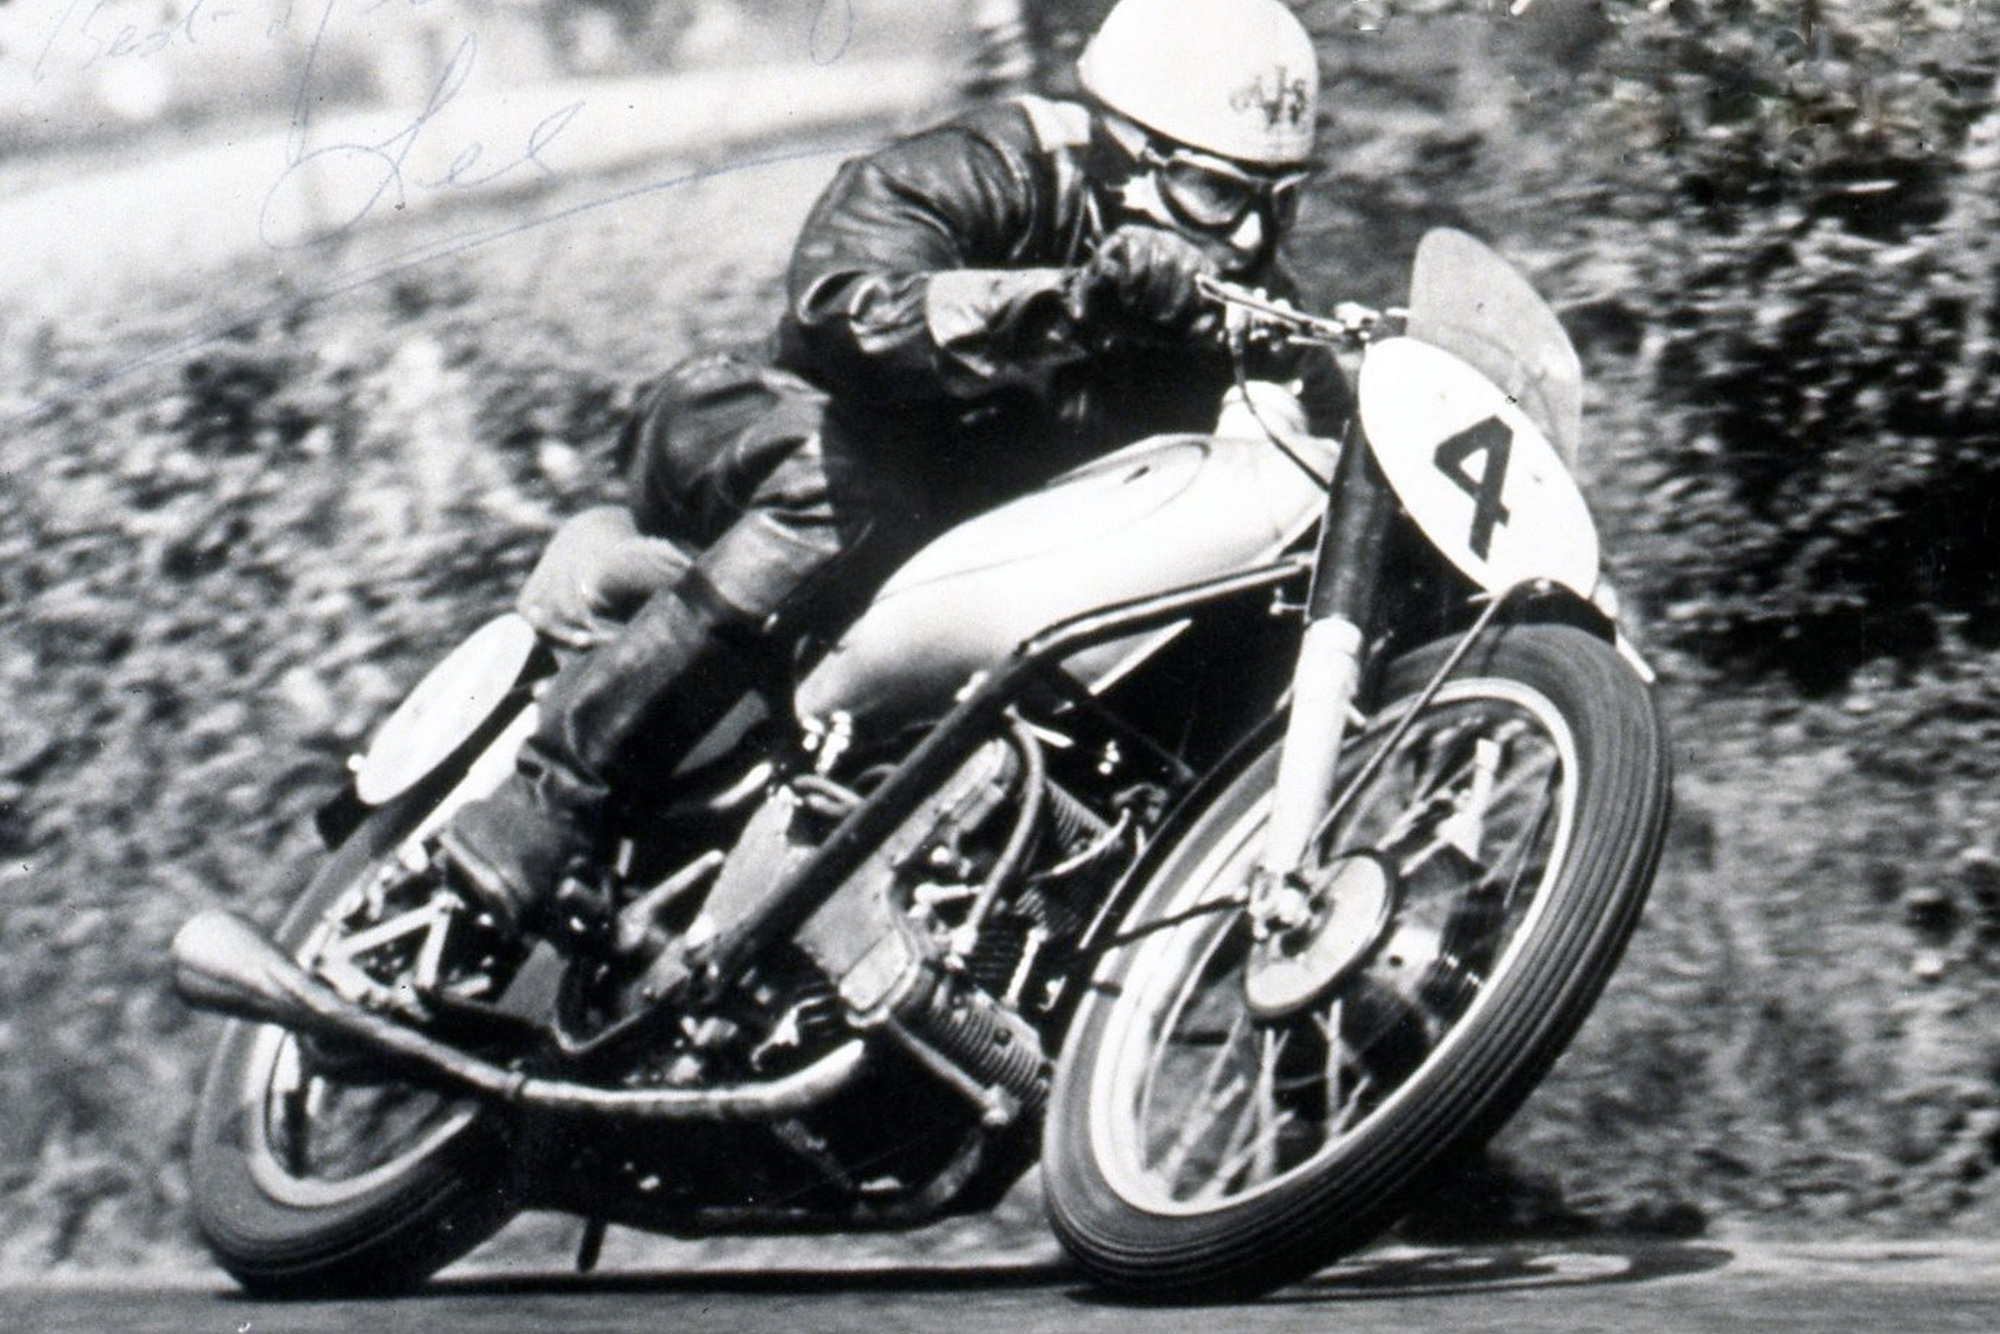 Les Graham on an AJS Porcupine twin in 1949